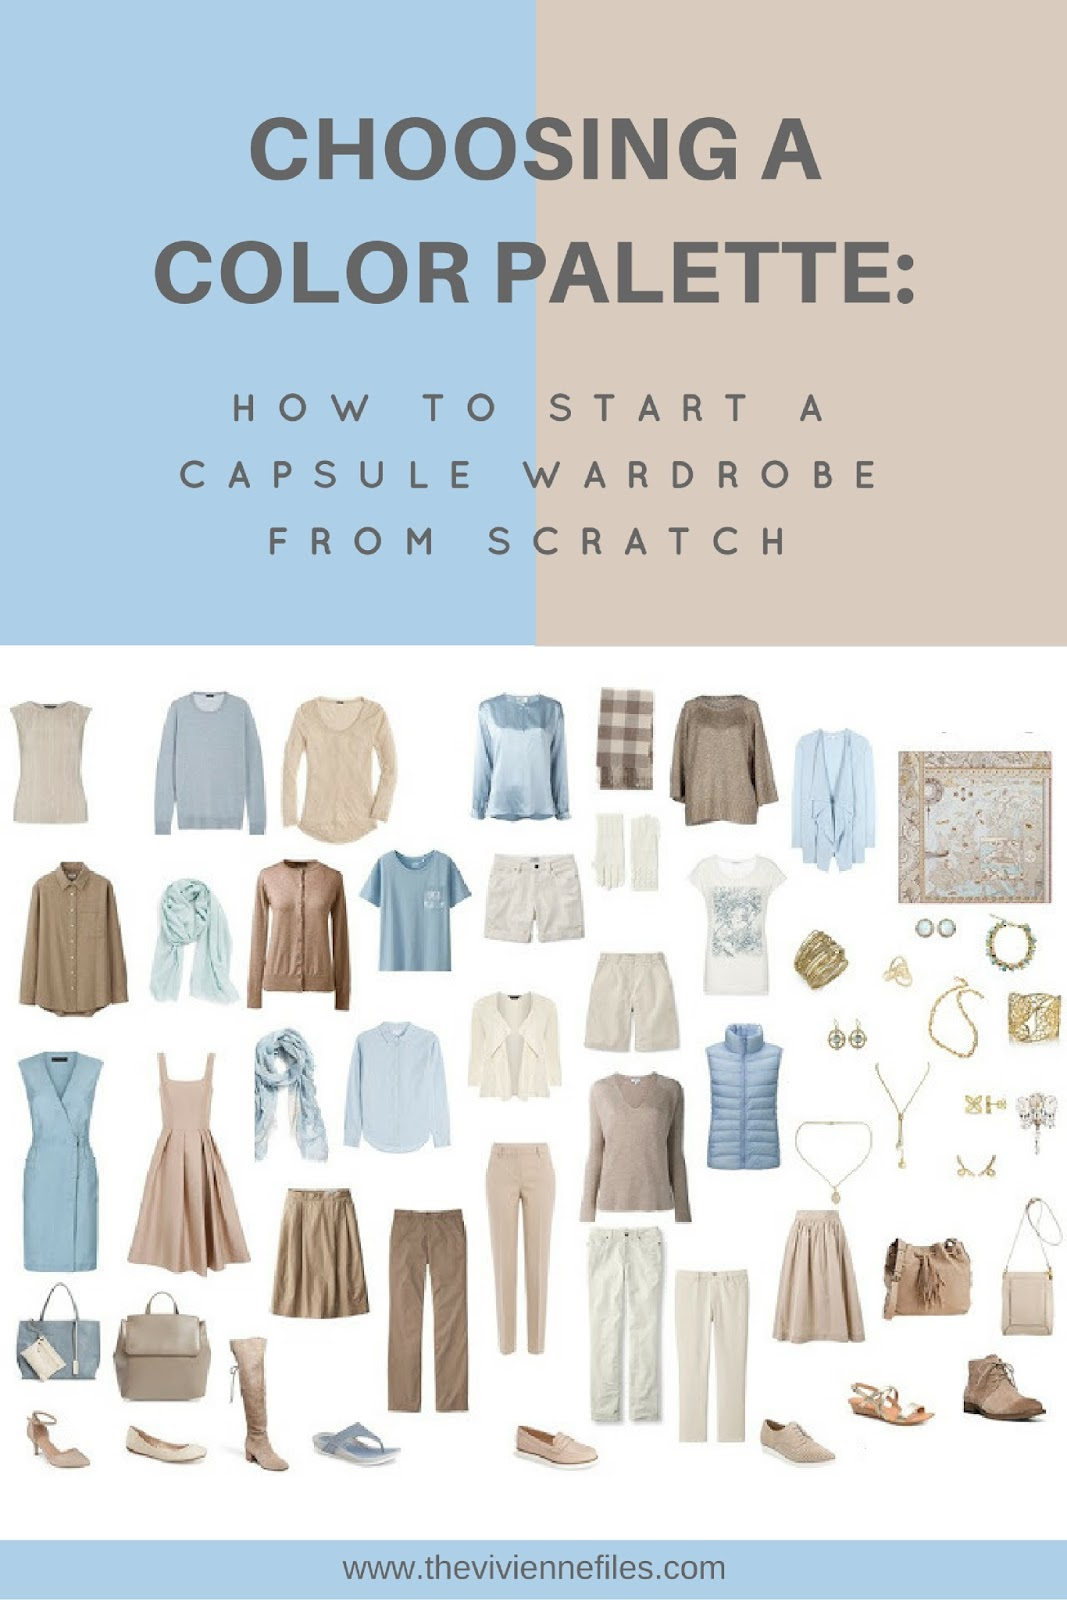 How To Build A Capsule Wardrobe From Scratch: Choosing